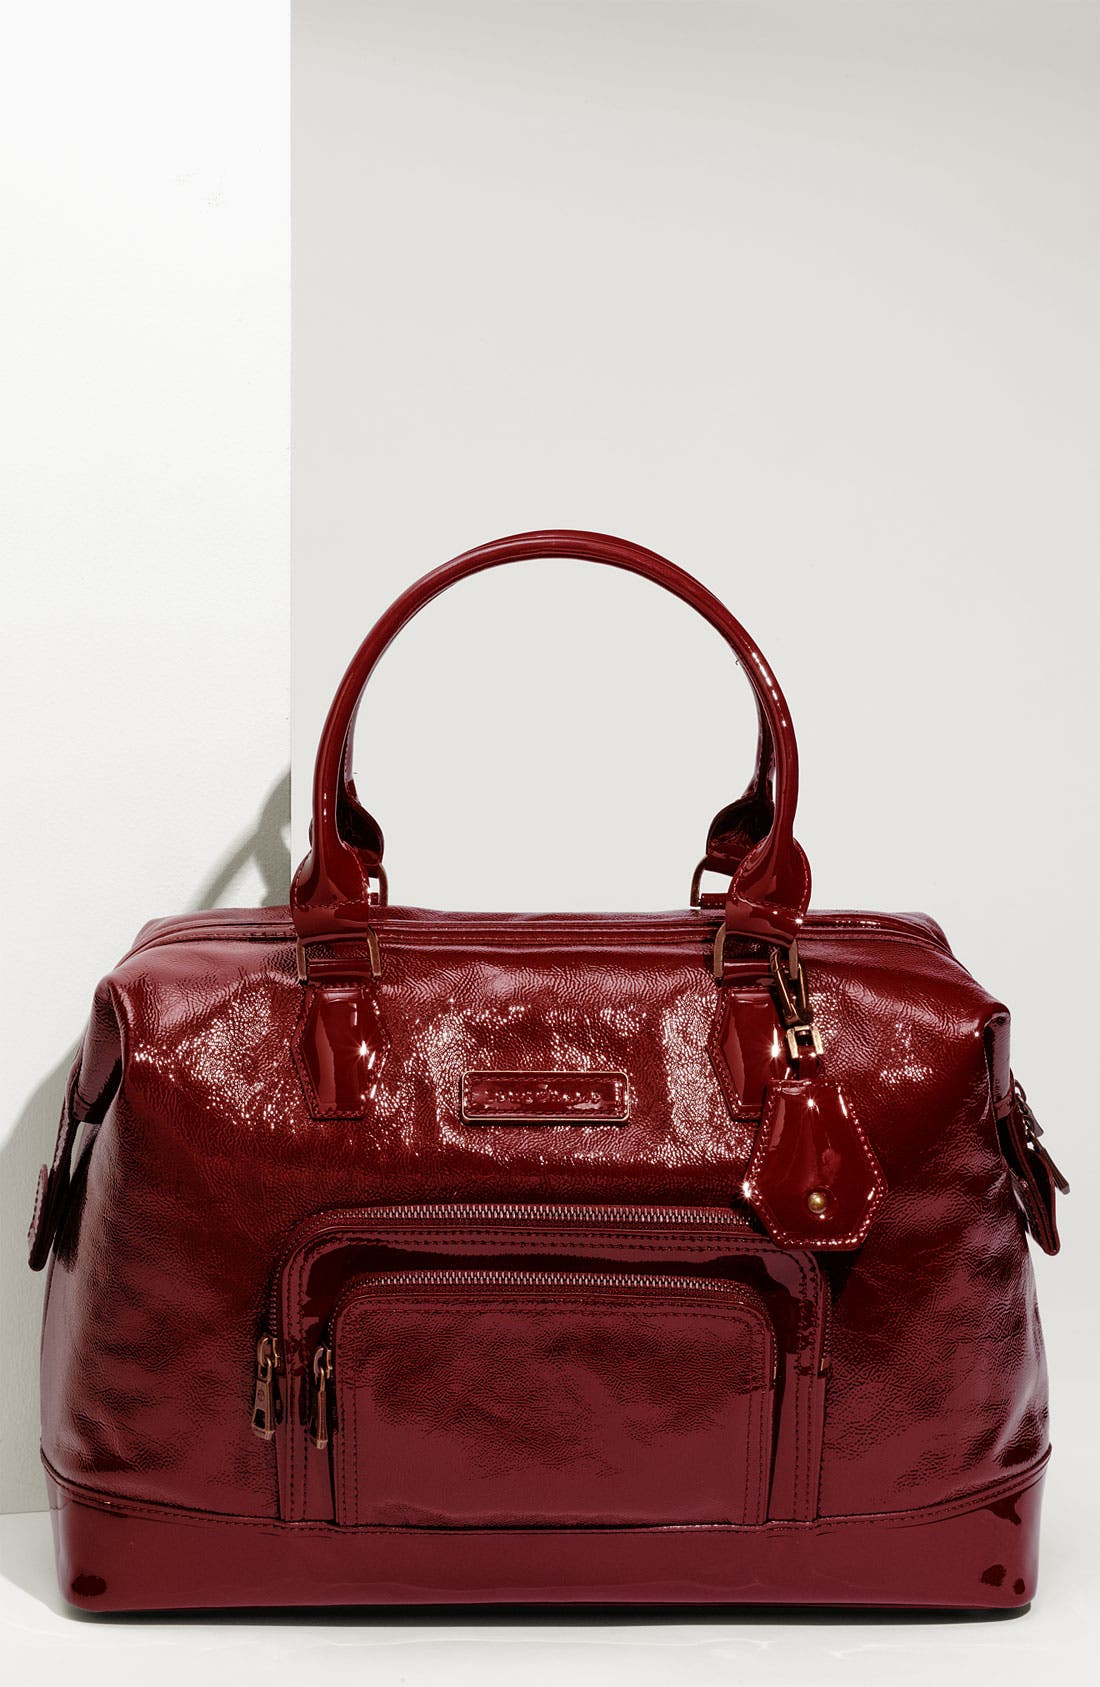 LONGCHAMP 'Legende Verni' Patent Calfskin Satchel, Main, color, 601